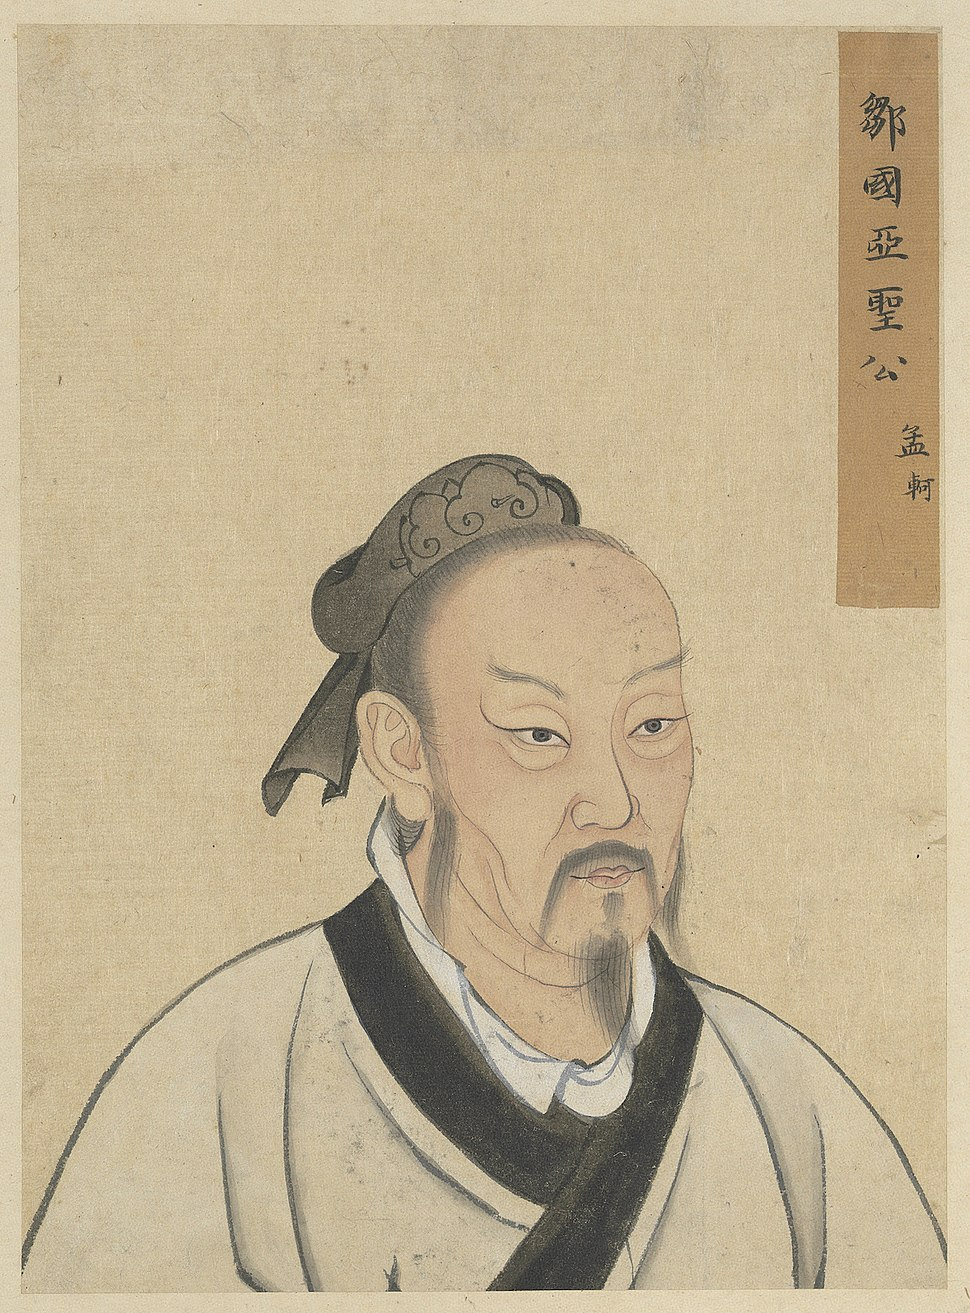 Half Portraits of the Great Sage and Virtuous Men of Old - Meng Ke (%E5%AD%9F%E8%BB%BB)